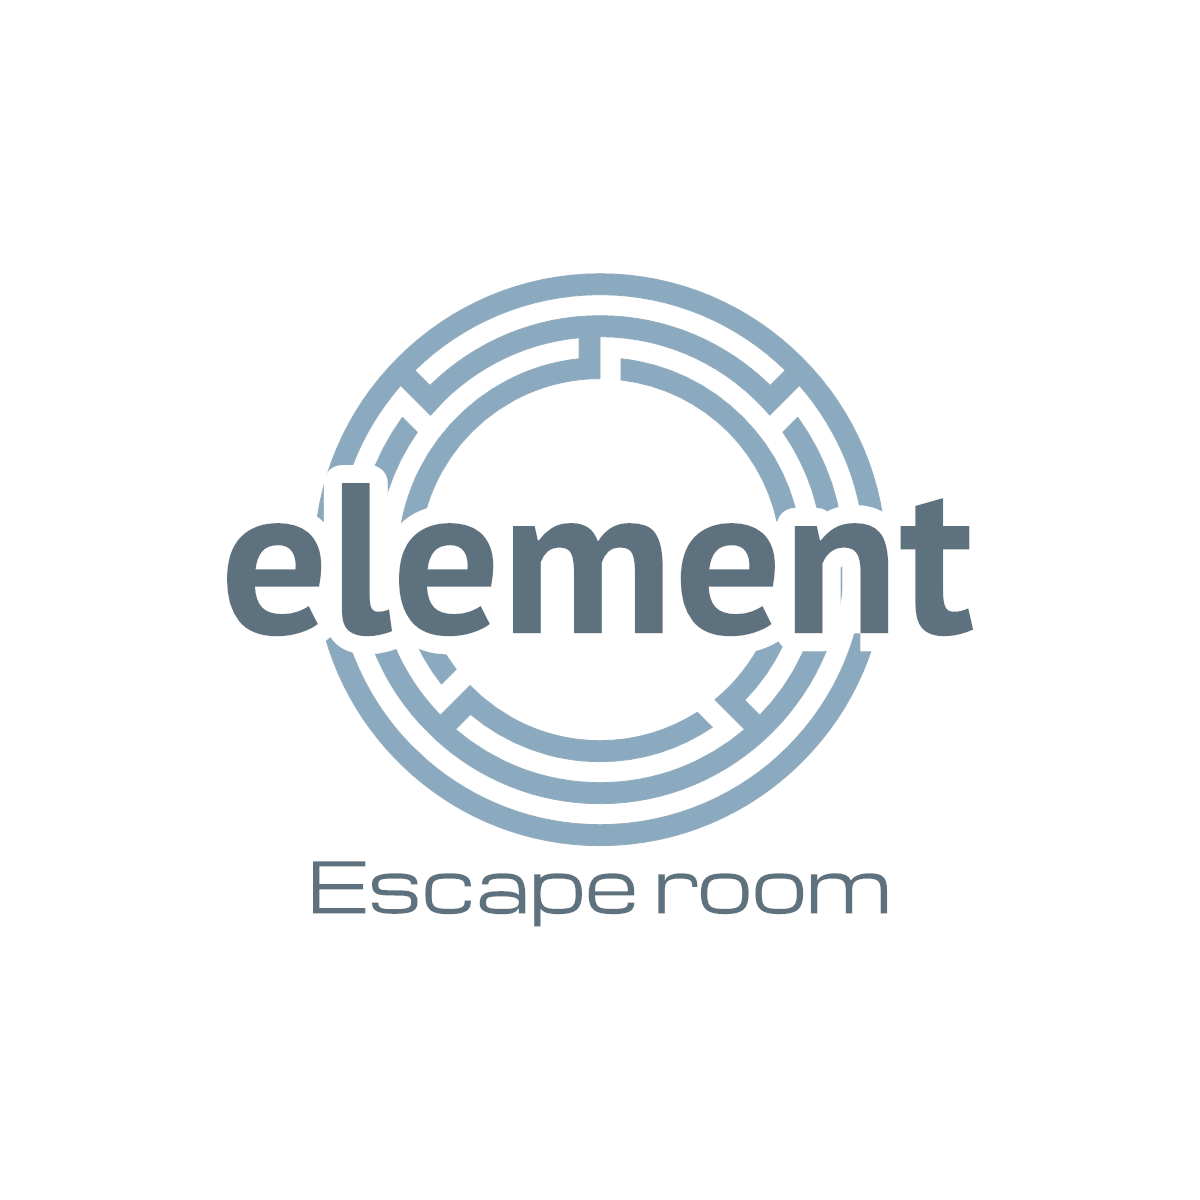 Element Escape room - Złoto umarłych